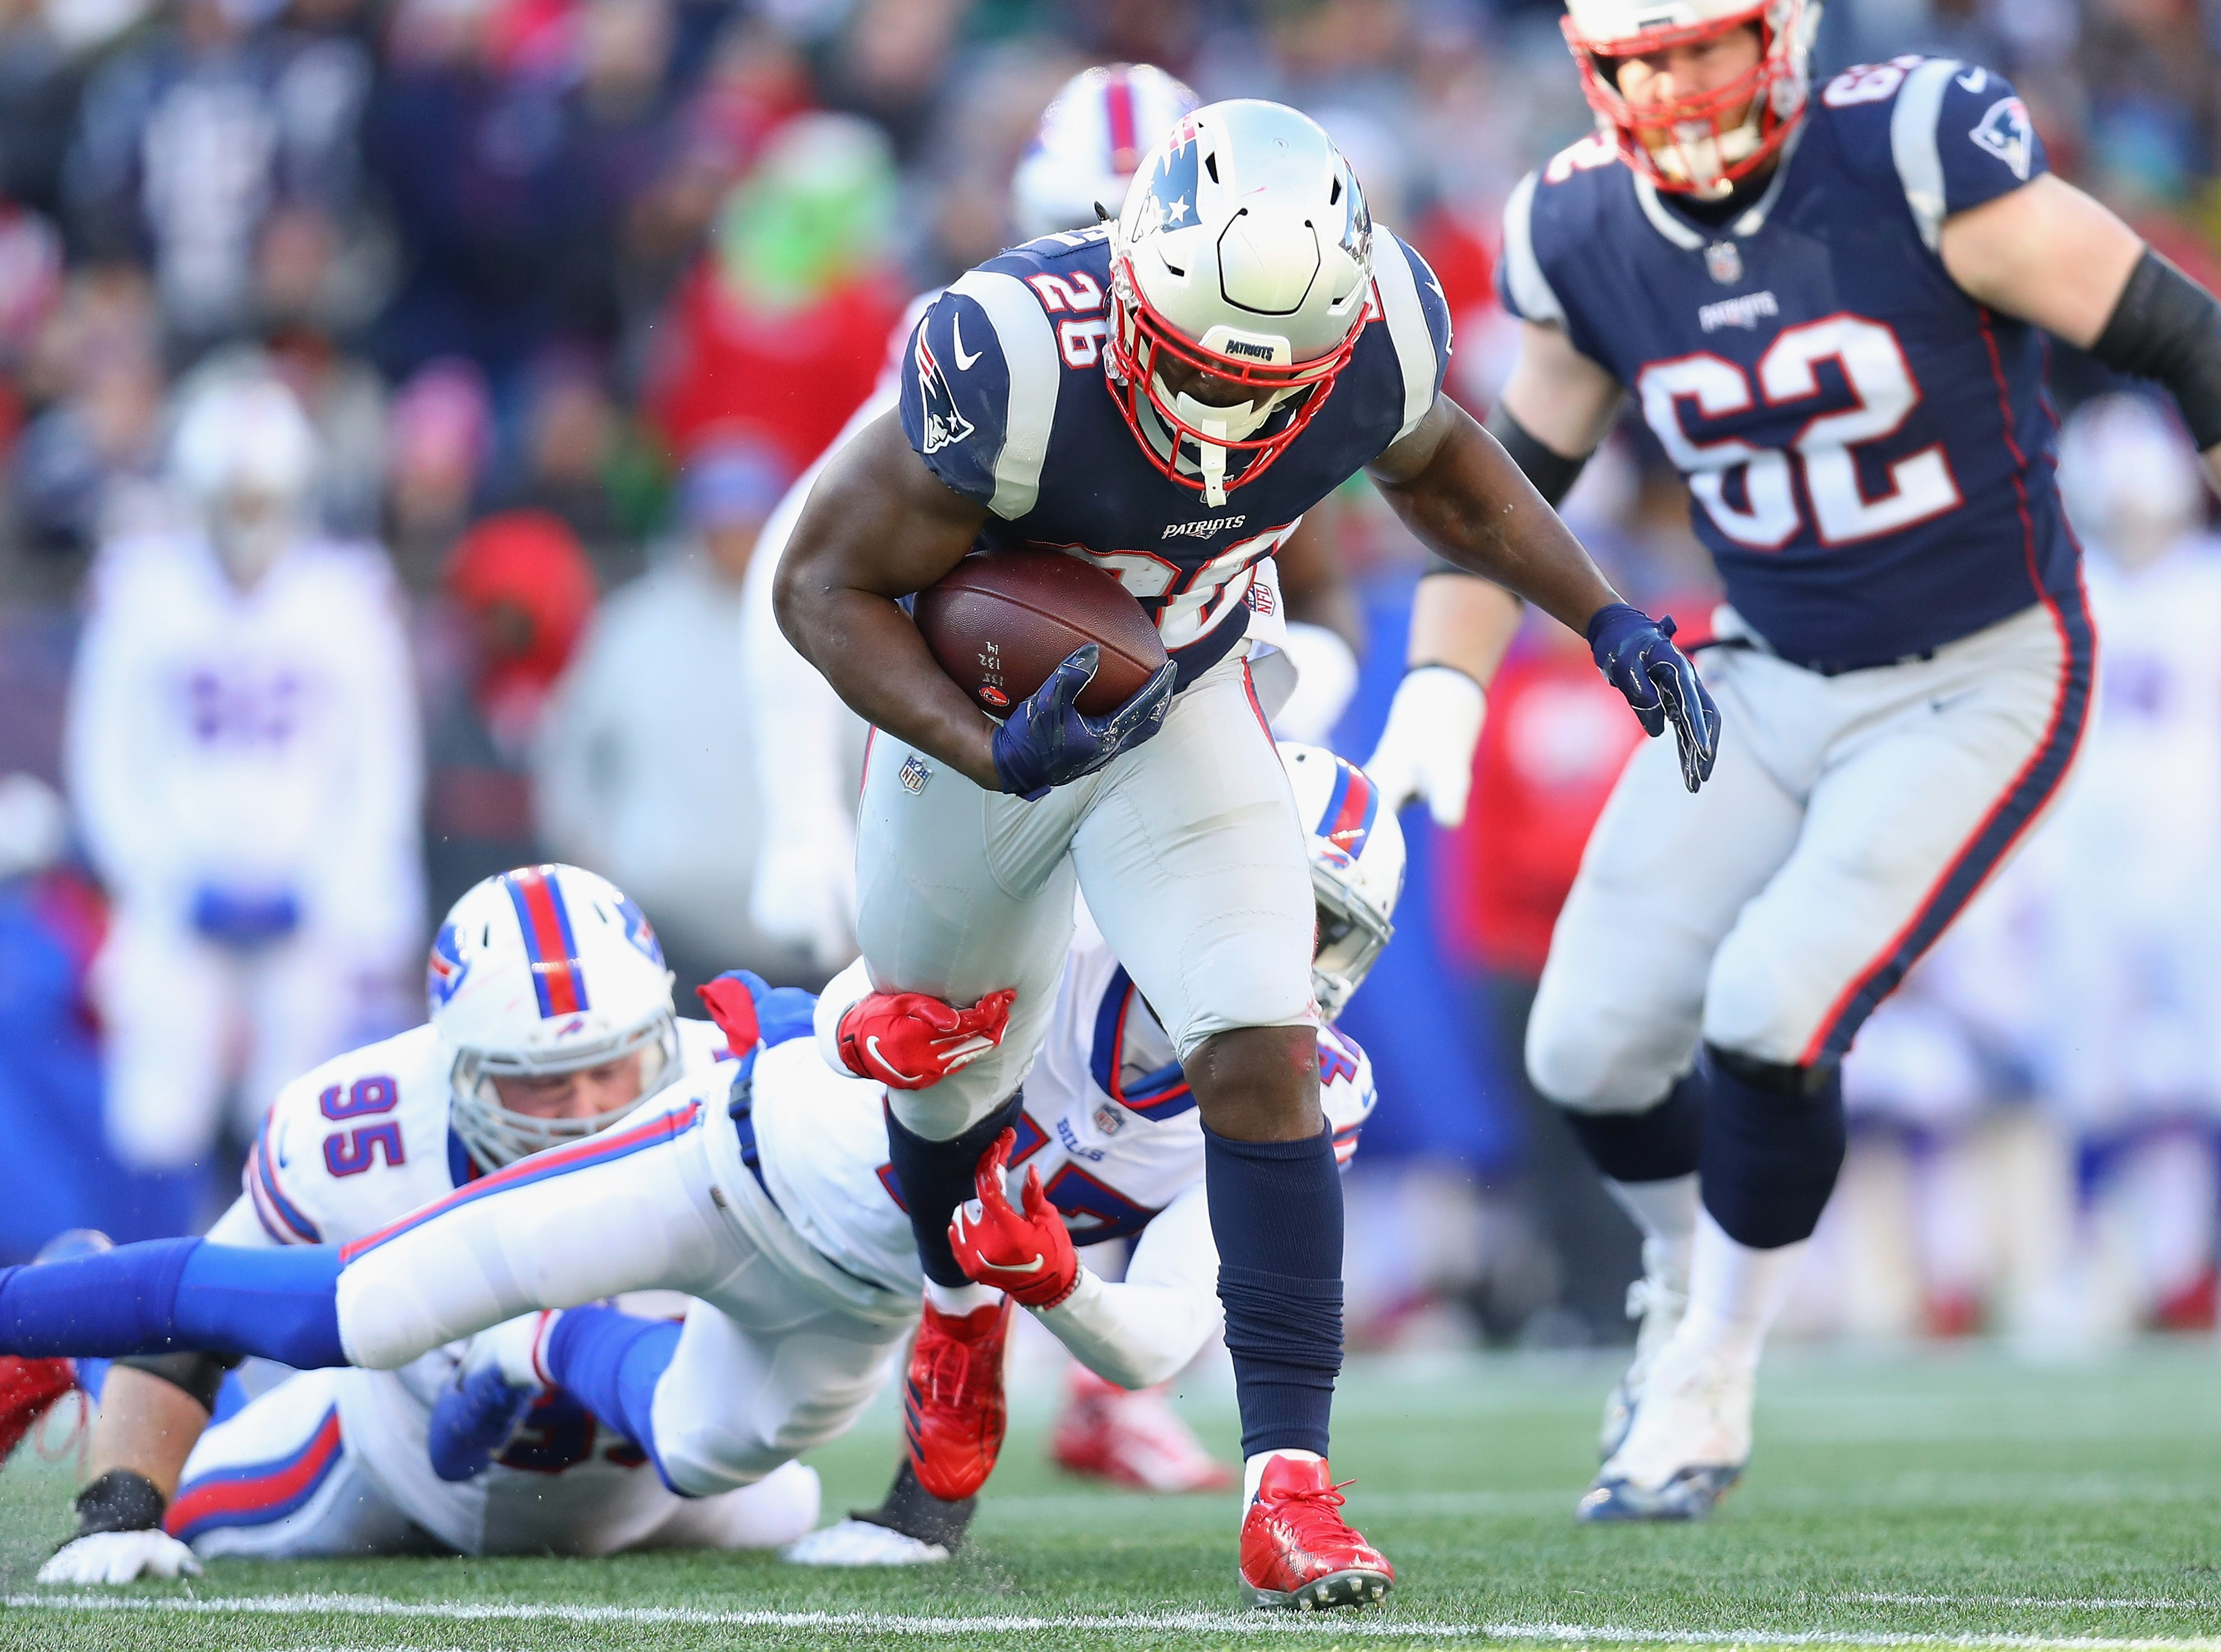 FOXBOROUGH, MA - DECEMBER 23:  Sony Michel #26 of the New England Patriots runs with the ball during the first half against the Buffalo Bills at Gillette Stadium on December 23, 2018 in Foxborough, Massachusetts.  (Photo by Maddie Meyer/Getty Images)